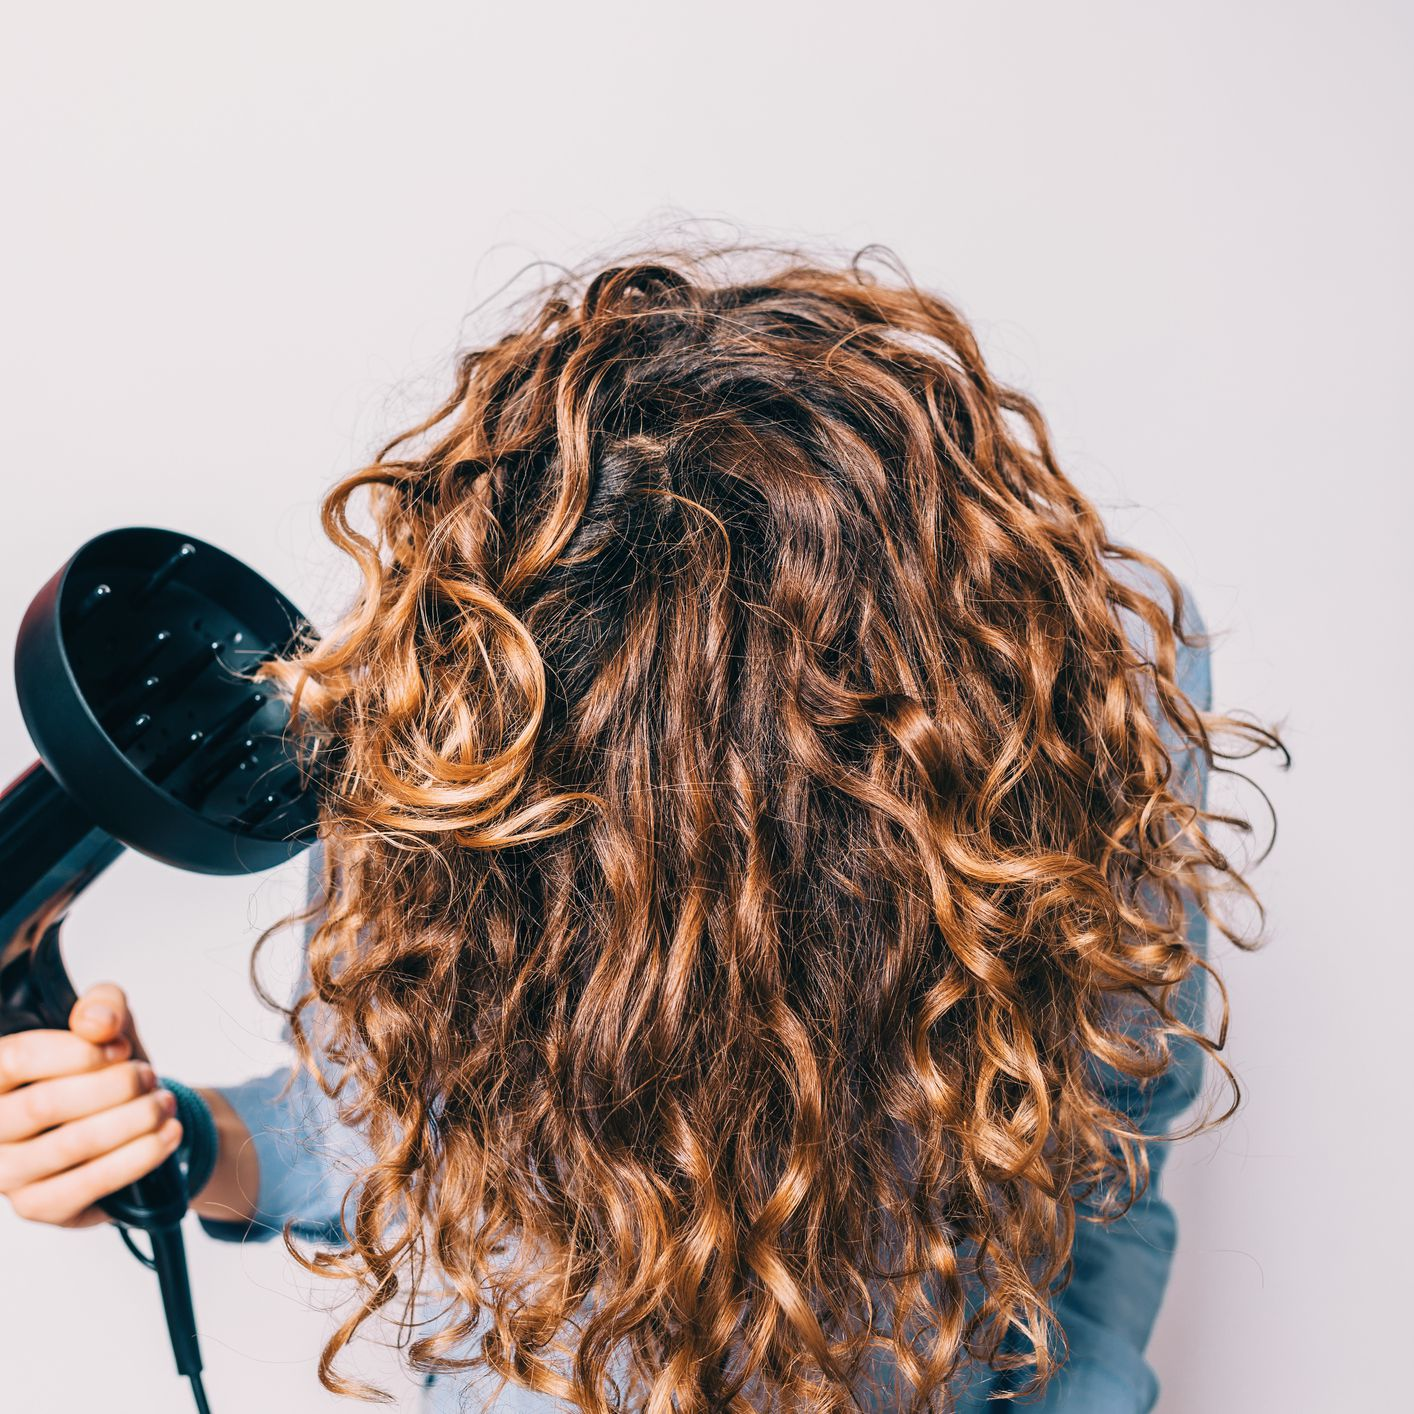 It's Official: These Are the 13 Best Hair Dryers for Curly Hair